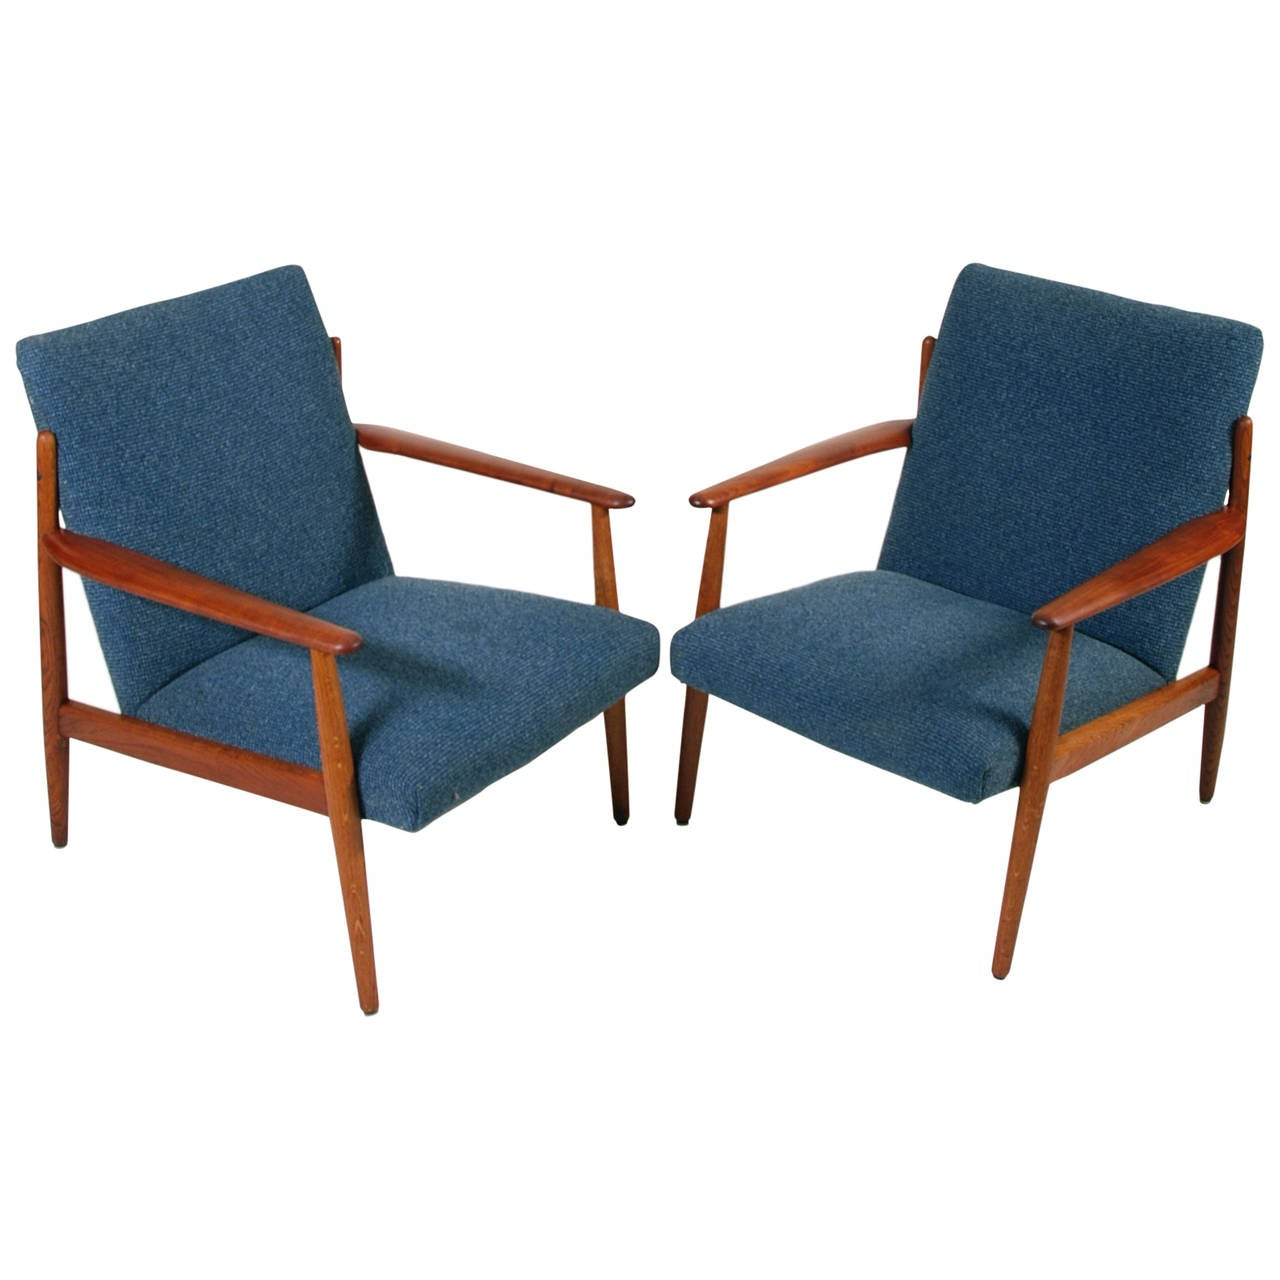 Wonderful Matching Danish Modern Chairs In Teak By Komfort In The Style Of Grete Jalk  1